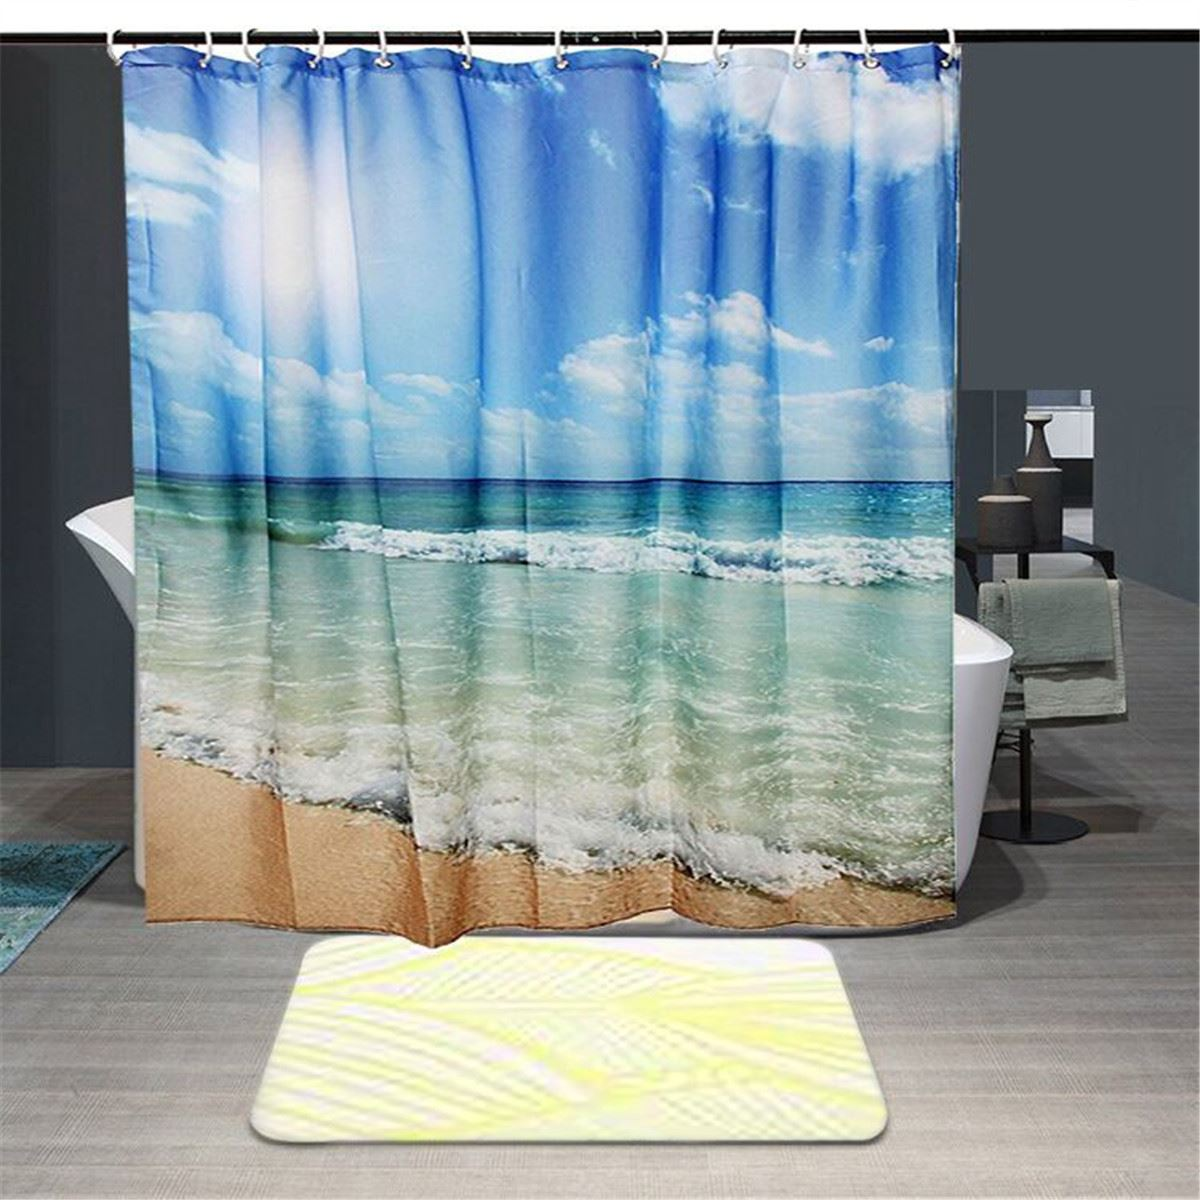 Polyester Sea Beach Waterproof Shower Curtain Shower Bath Screen ...